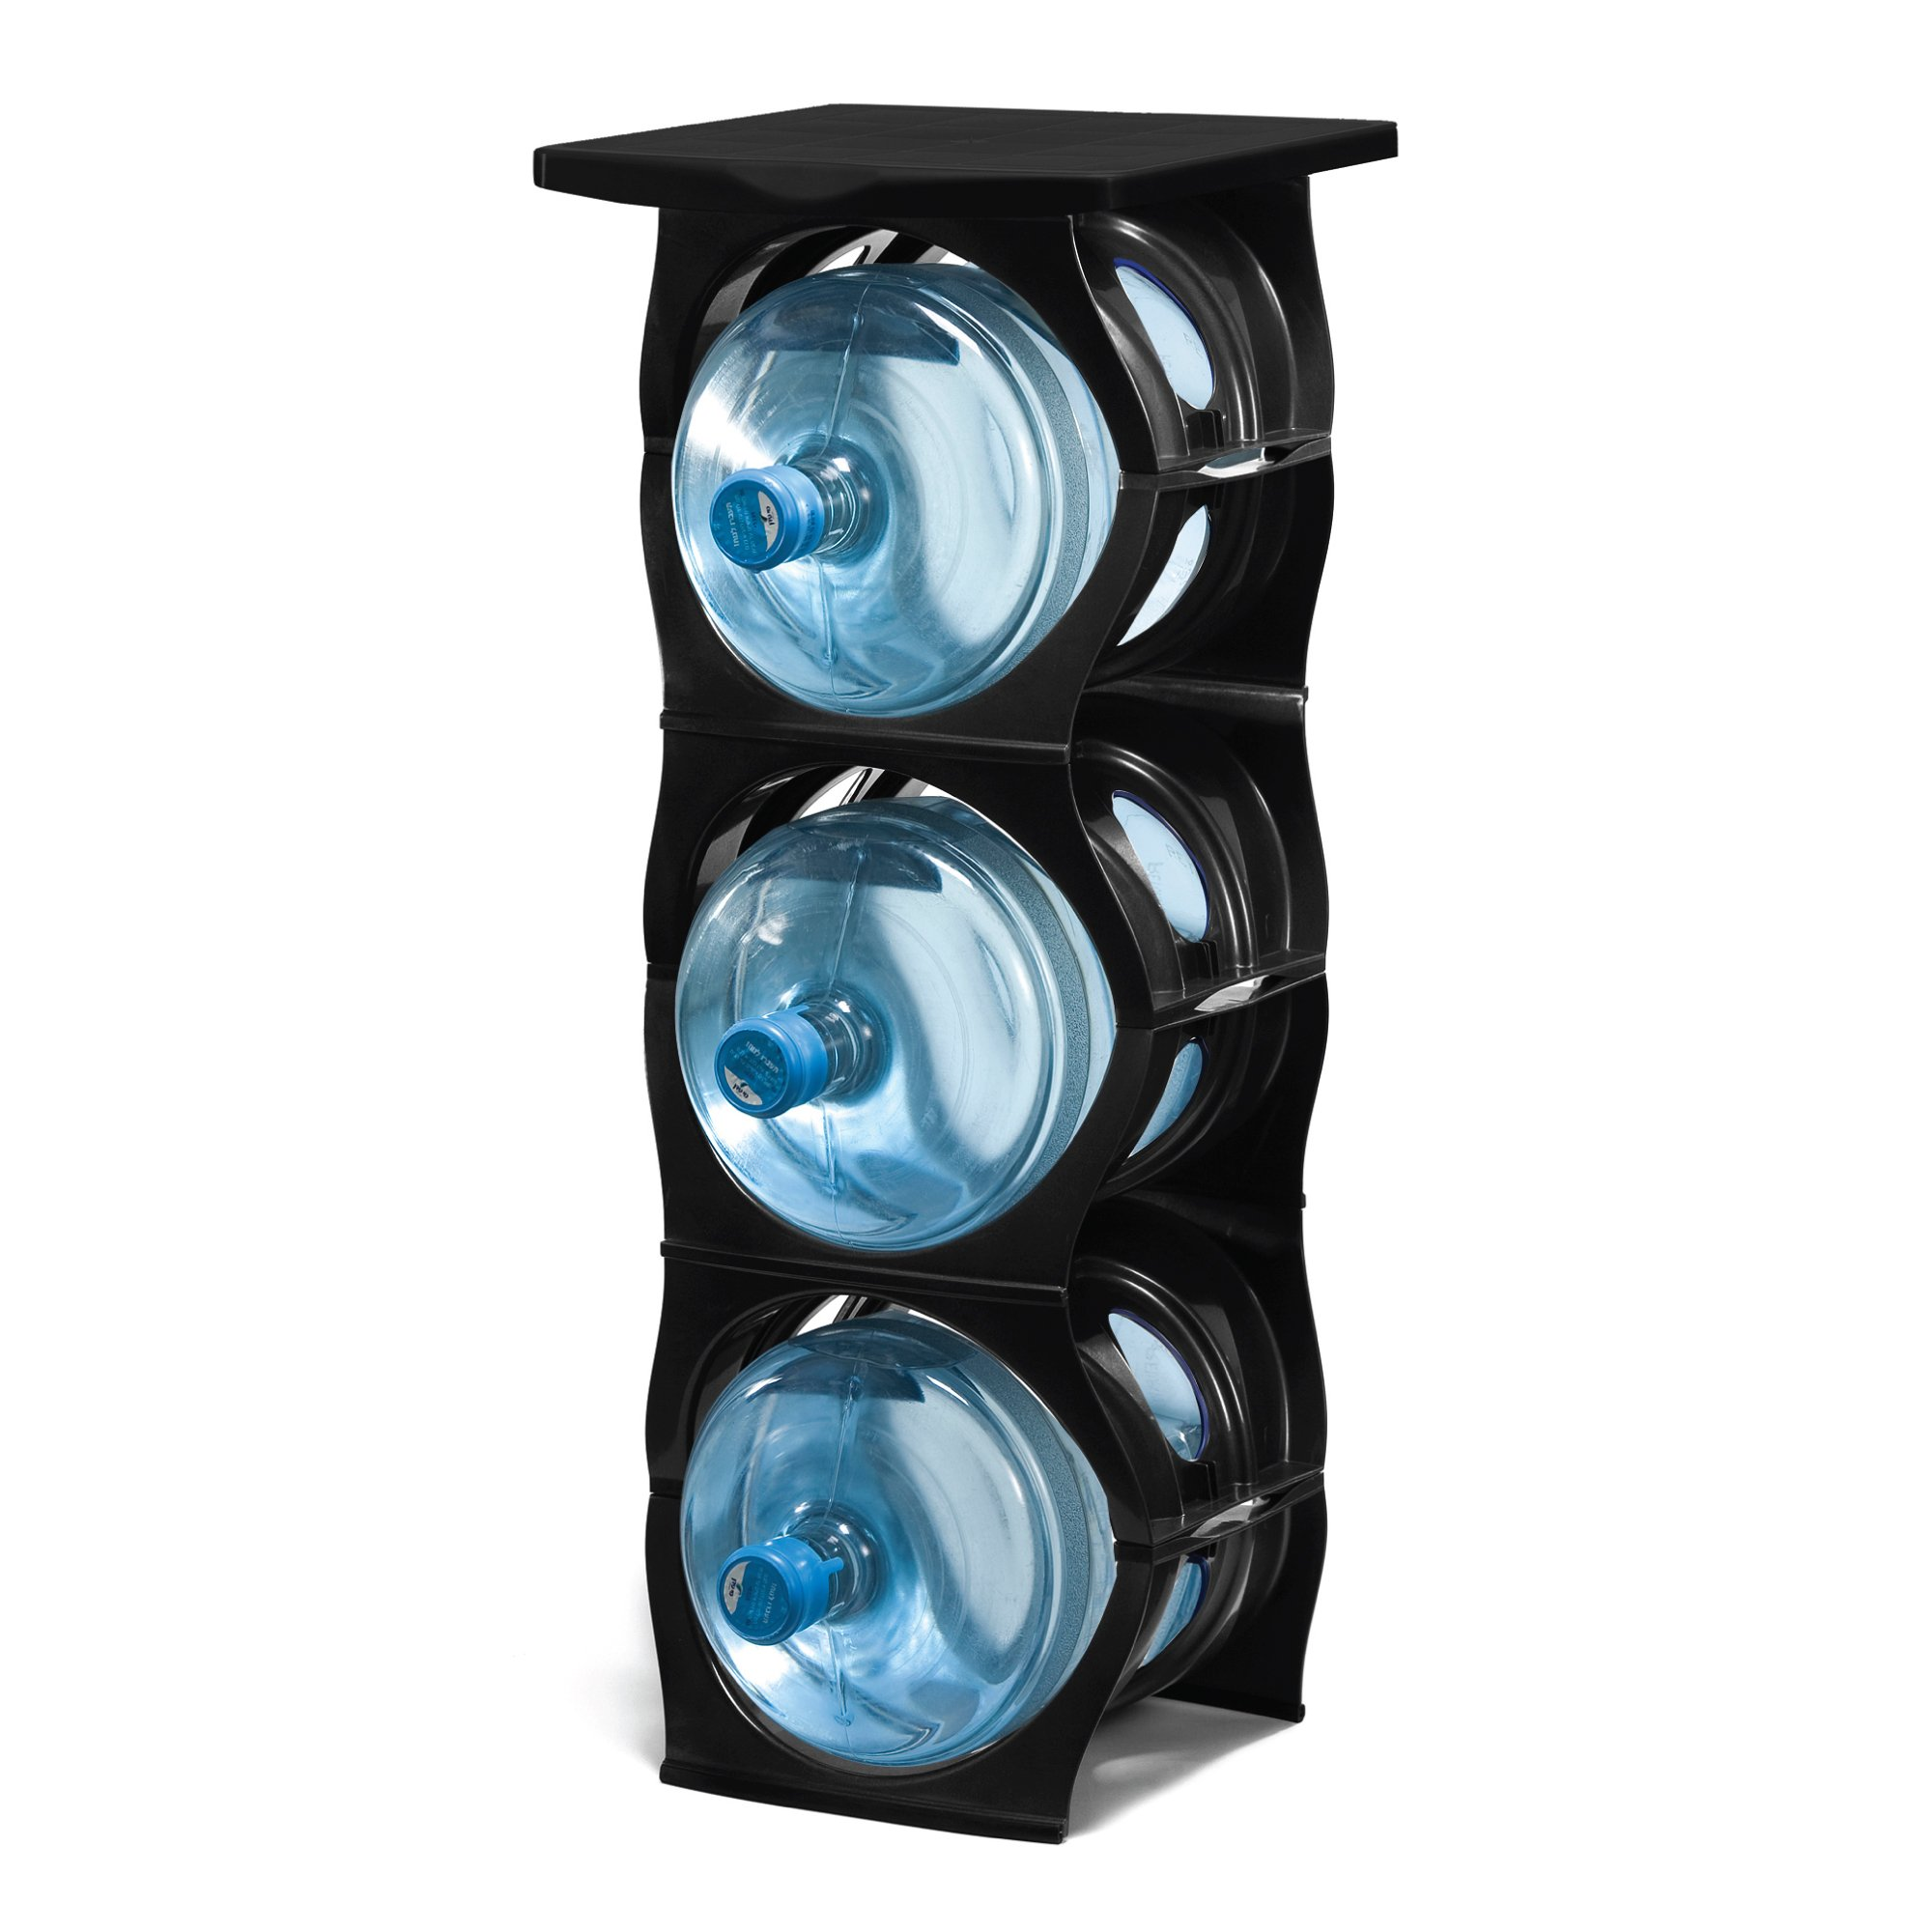 U-STACK Water Bottle Storage Rack - Holds Three 5 Gallon Bottles for Water Coolers (3 Bottle with Shelf) (Black)